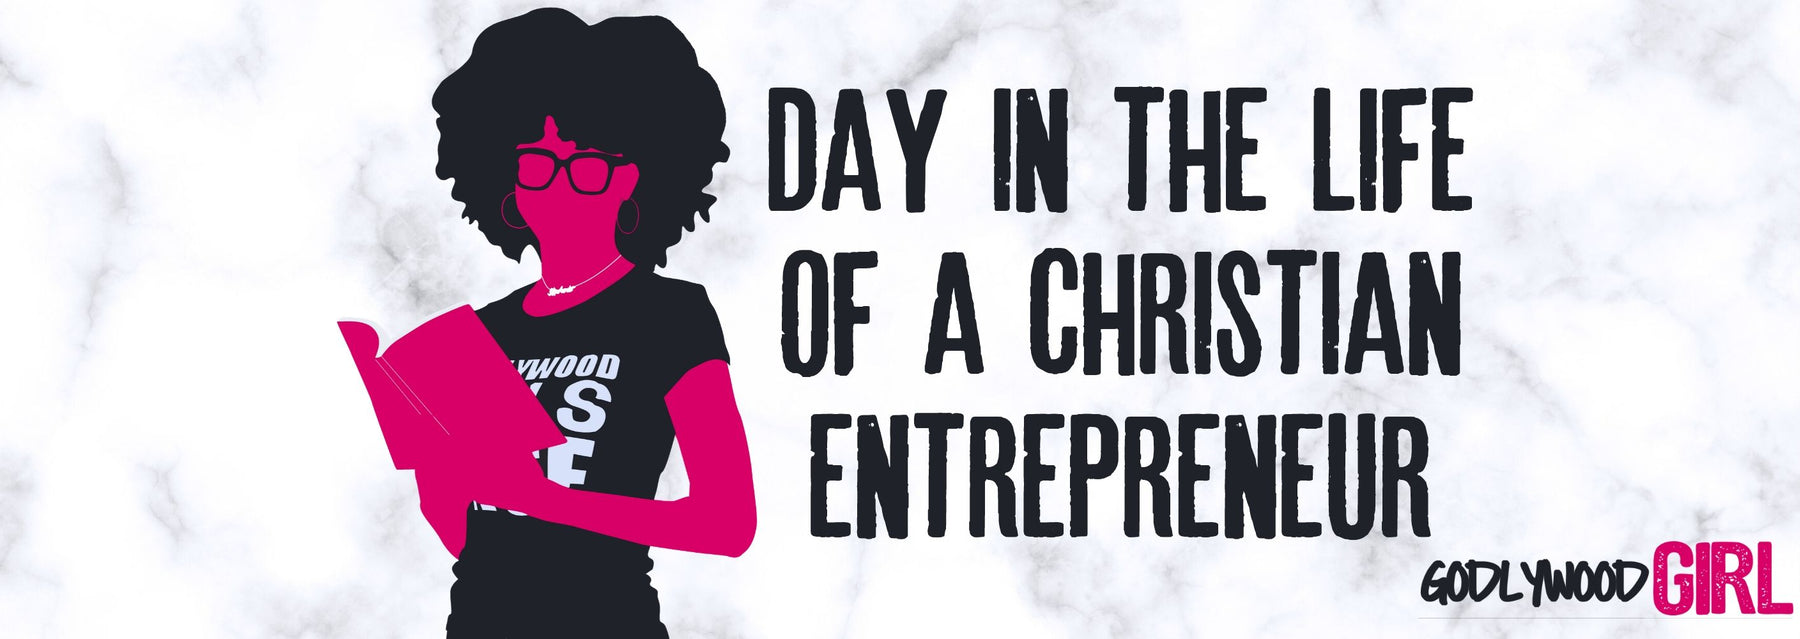 Day In The Life Of A Christian Entrepreneur Ep.4 | I'm burning out?